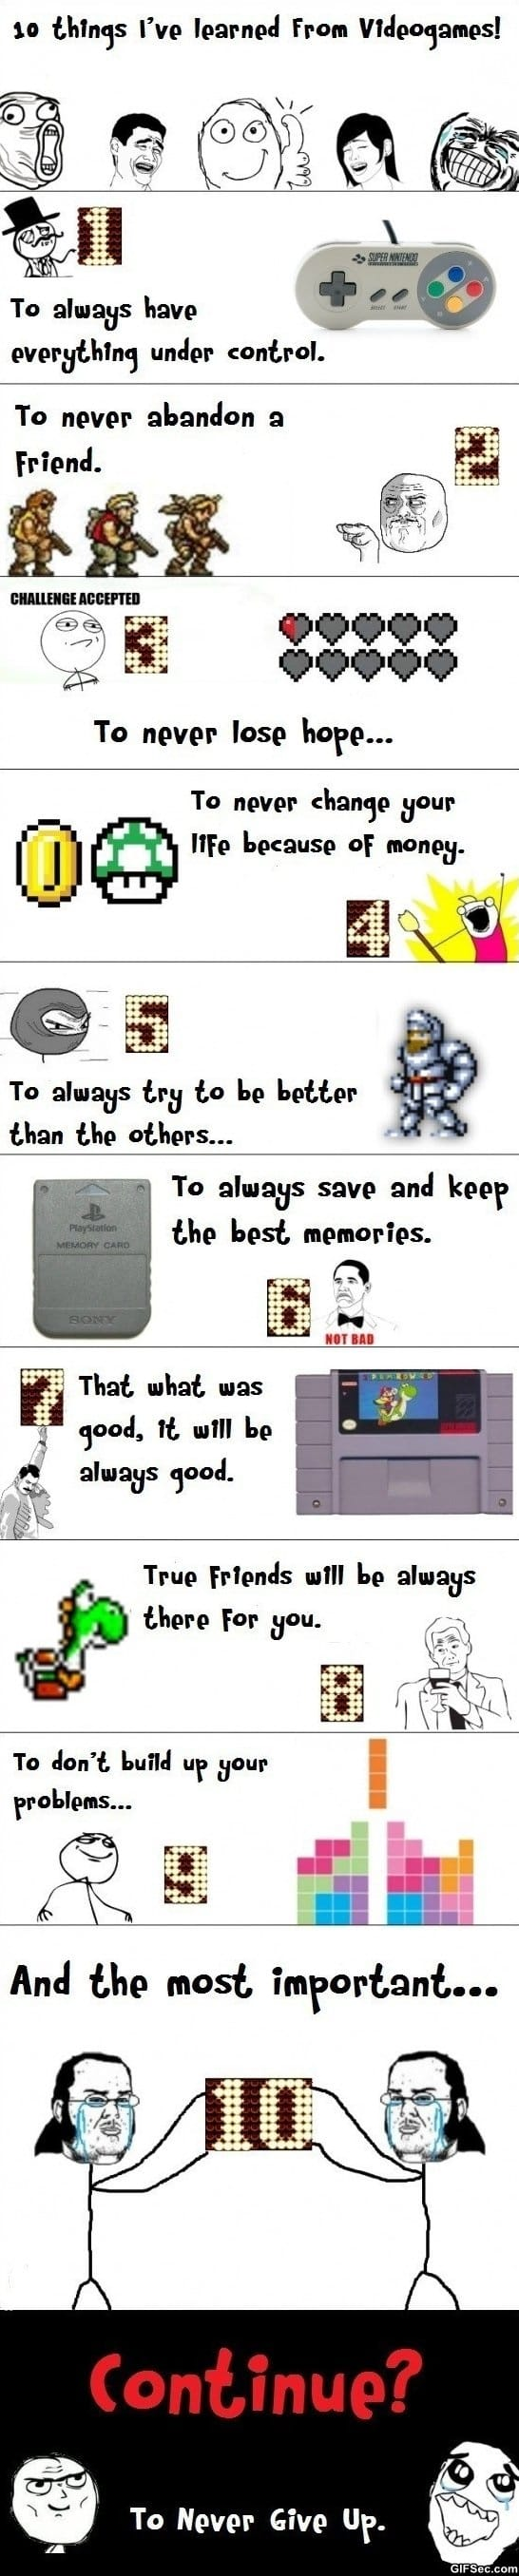 meme-10-things-ive-learned-from-videogames